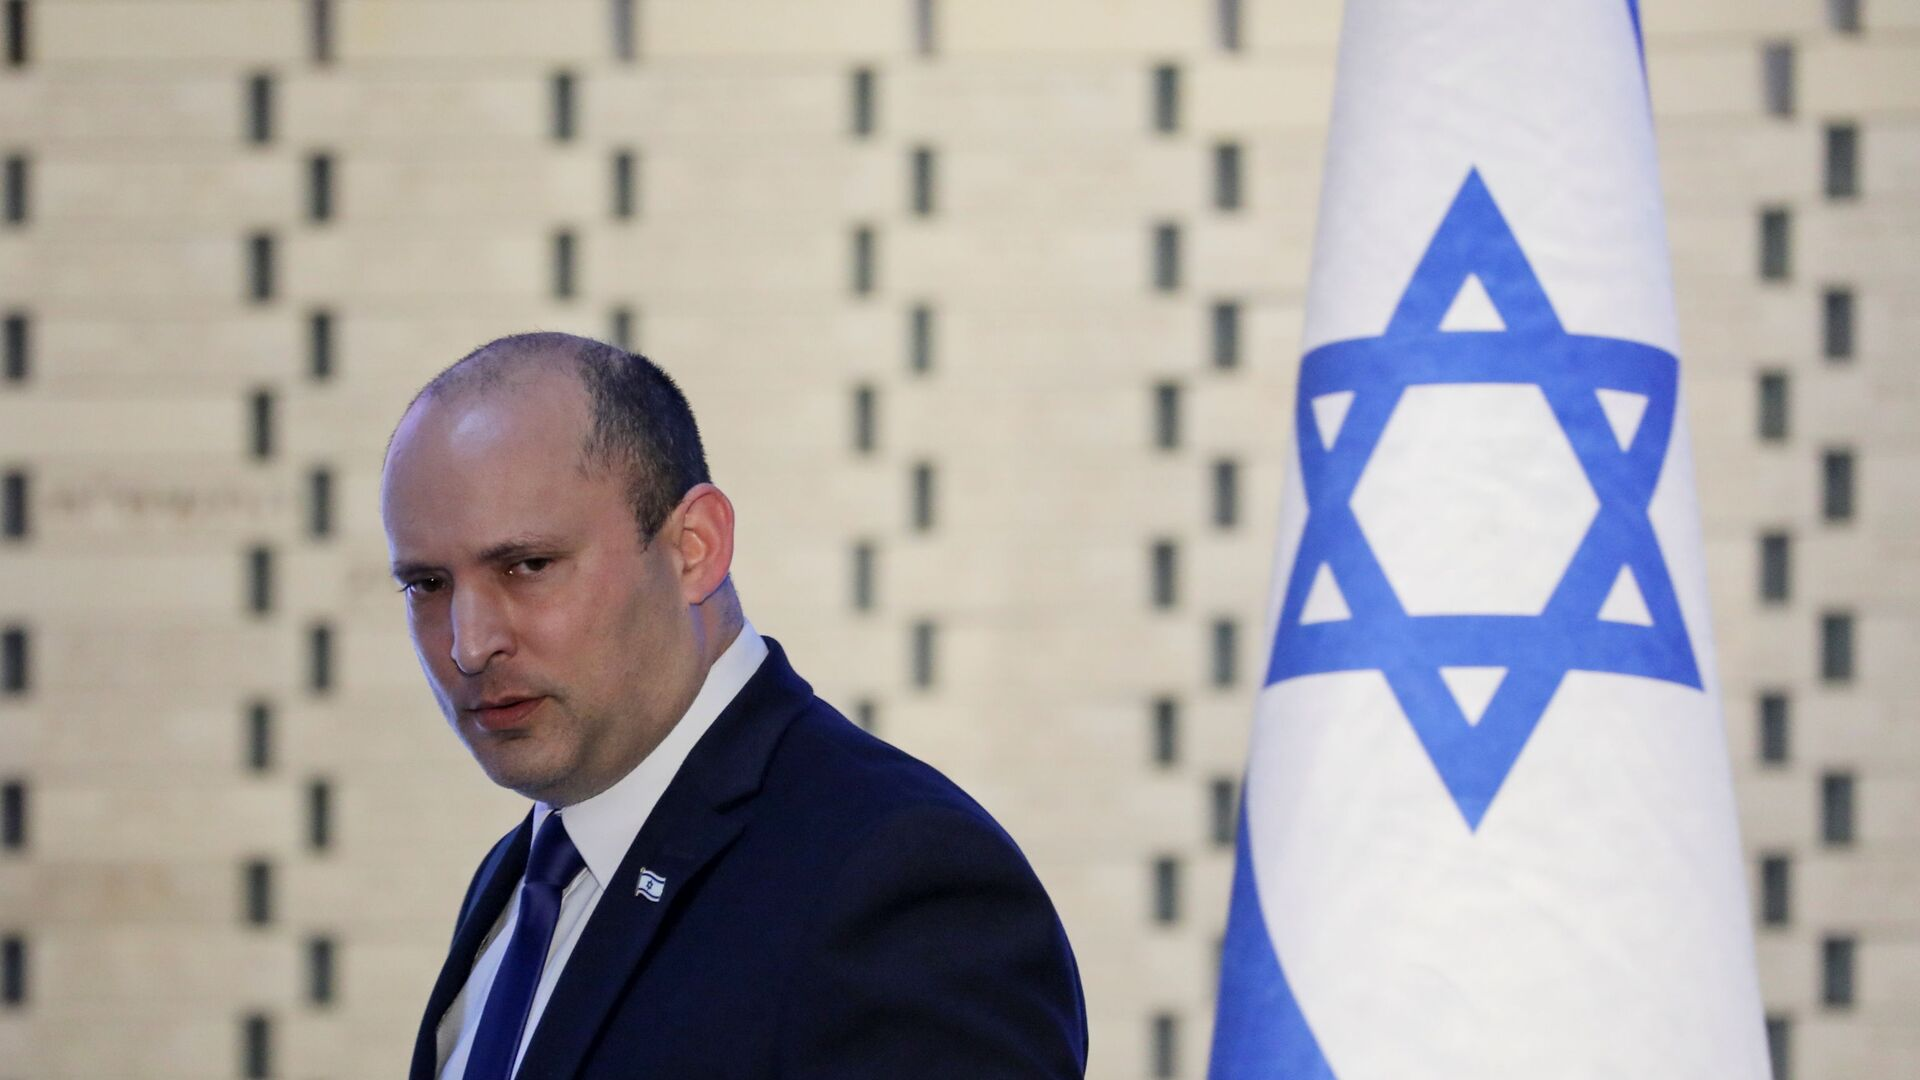 Israeli Prime Minister Naftali Bennett attends a memorial ceremony for soldiers who fell in the 2014 war with Gaza, at the Hall of Remembrance of Mount Herzl military cemetery in Jerusalem June 20, 2021 - Sputnik International, 1920, 15.09.2021